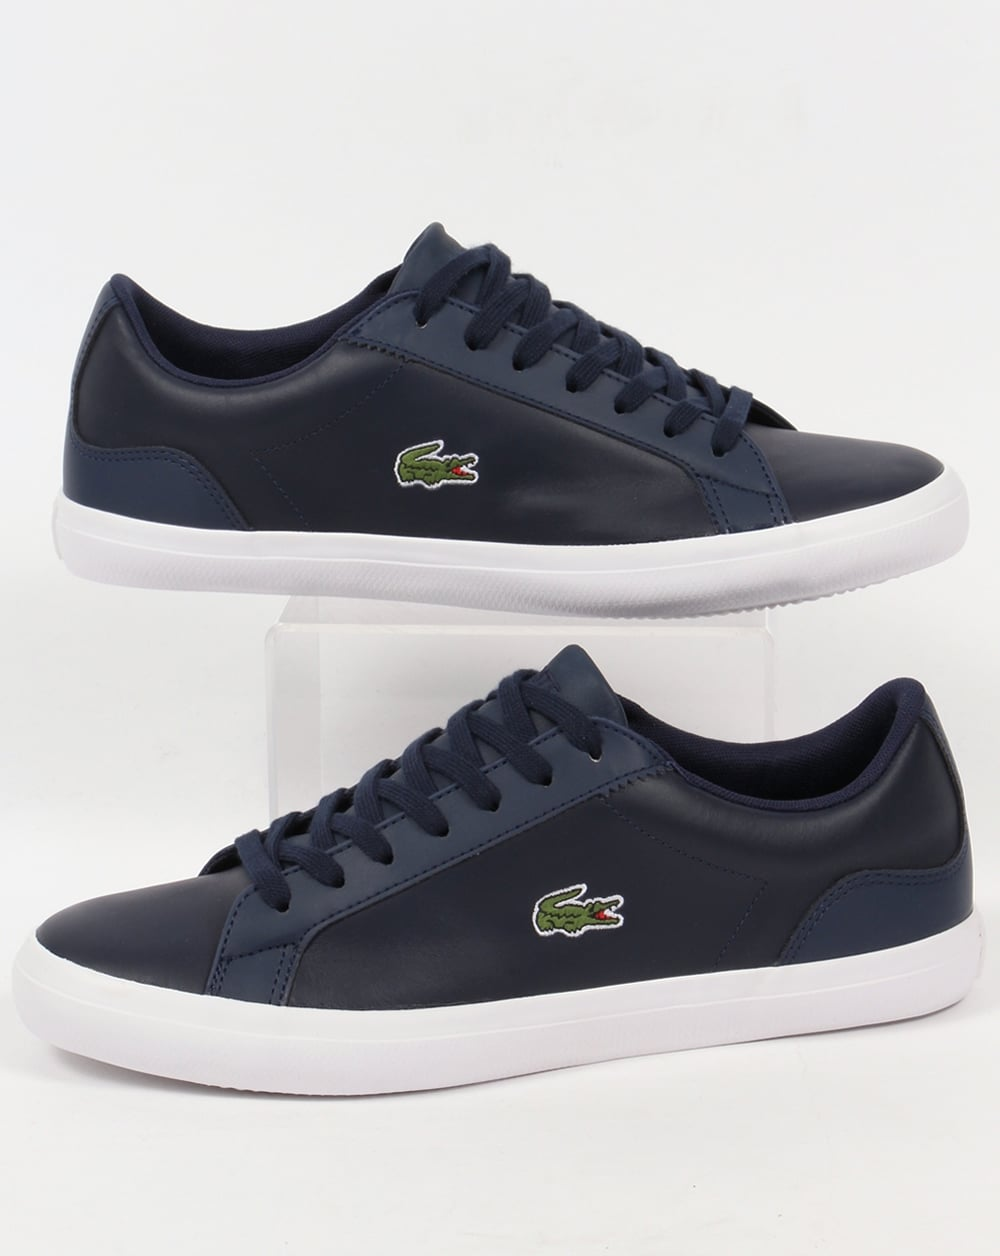 964f9808f291 Lacoste Lacoste Lerond Leather Trainers Navy